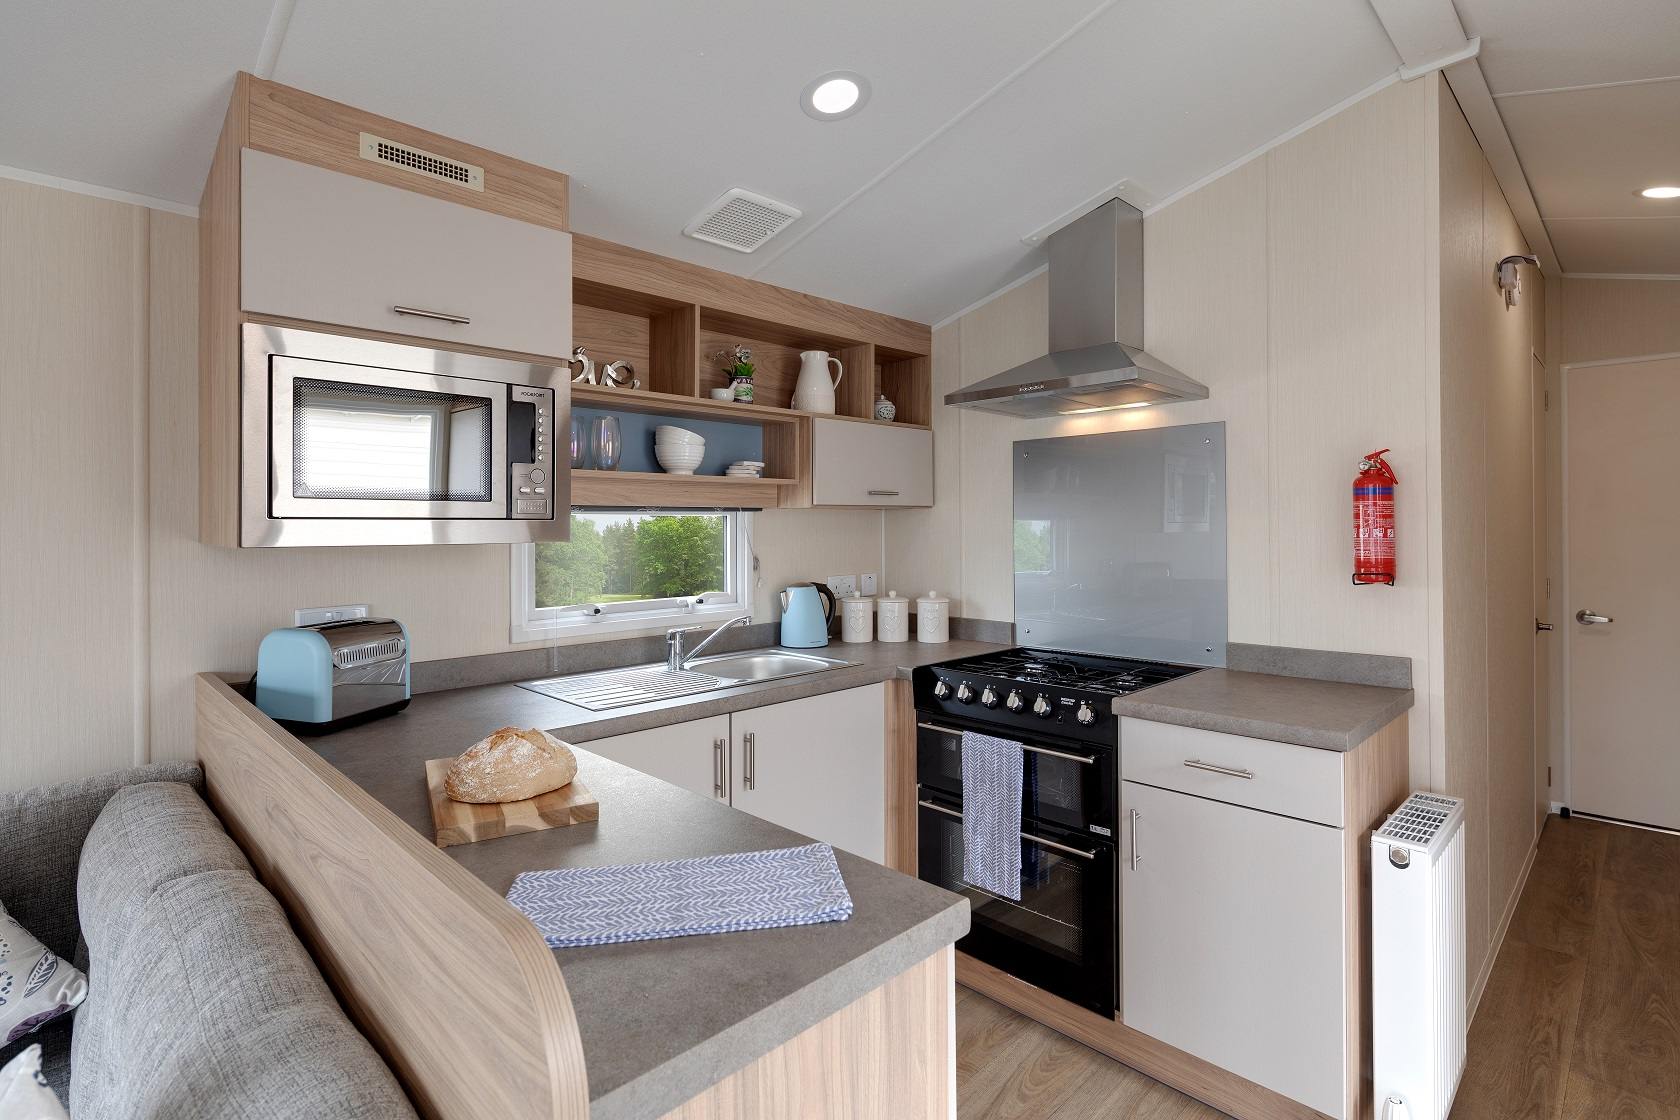 Willerby Linwood: New Static Caravans and Holiday Homes for Sale, Clifton, Morpeth Large Image 3